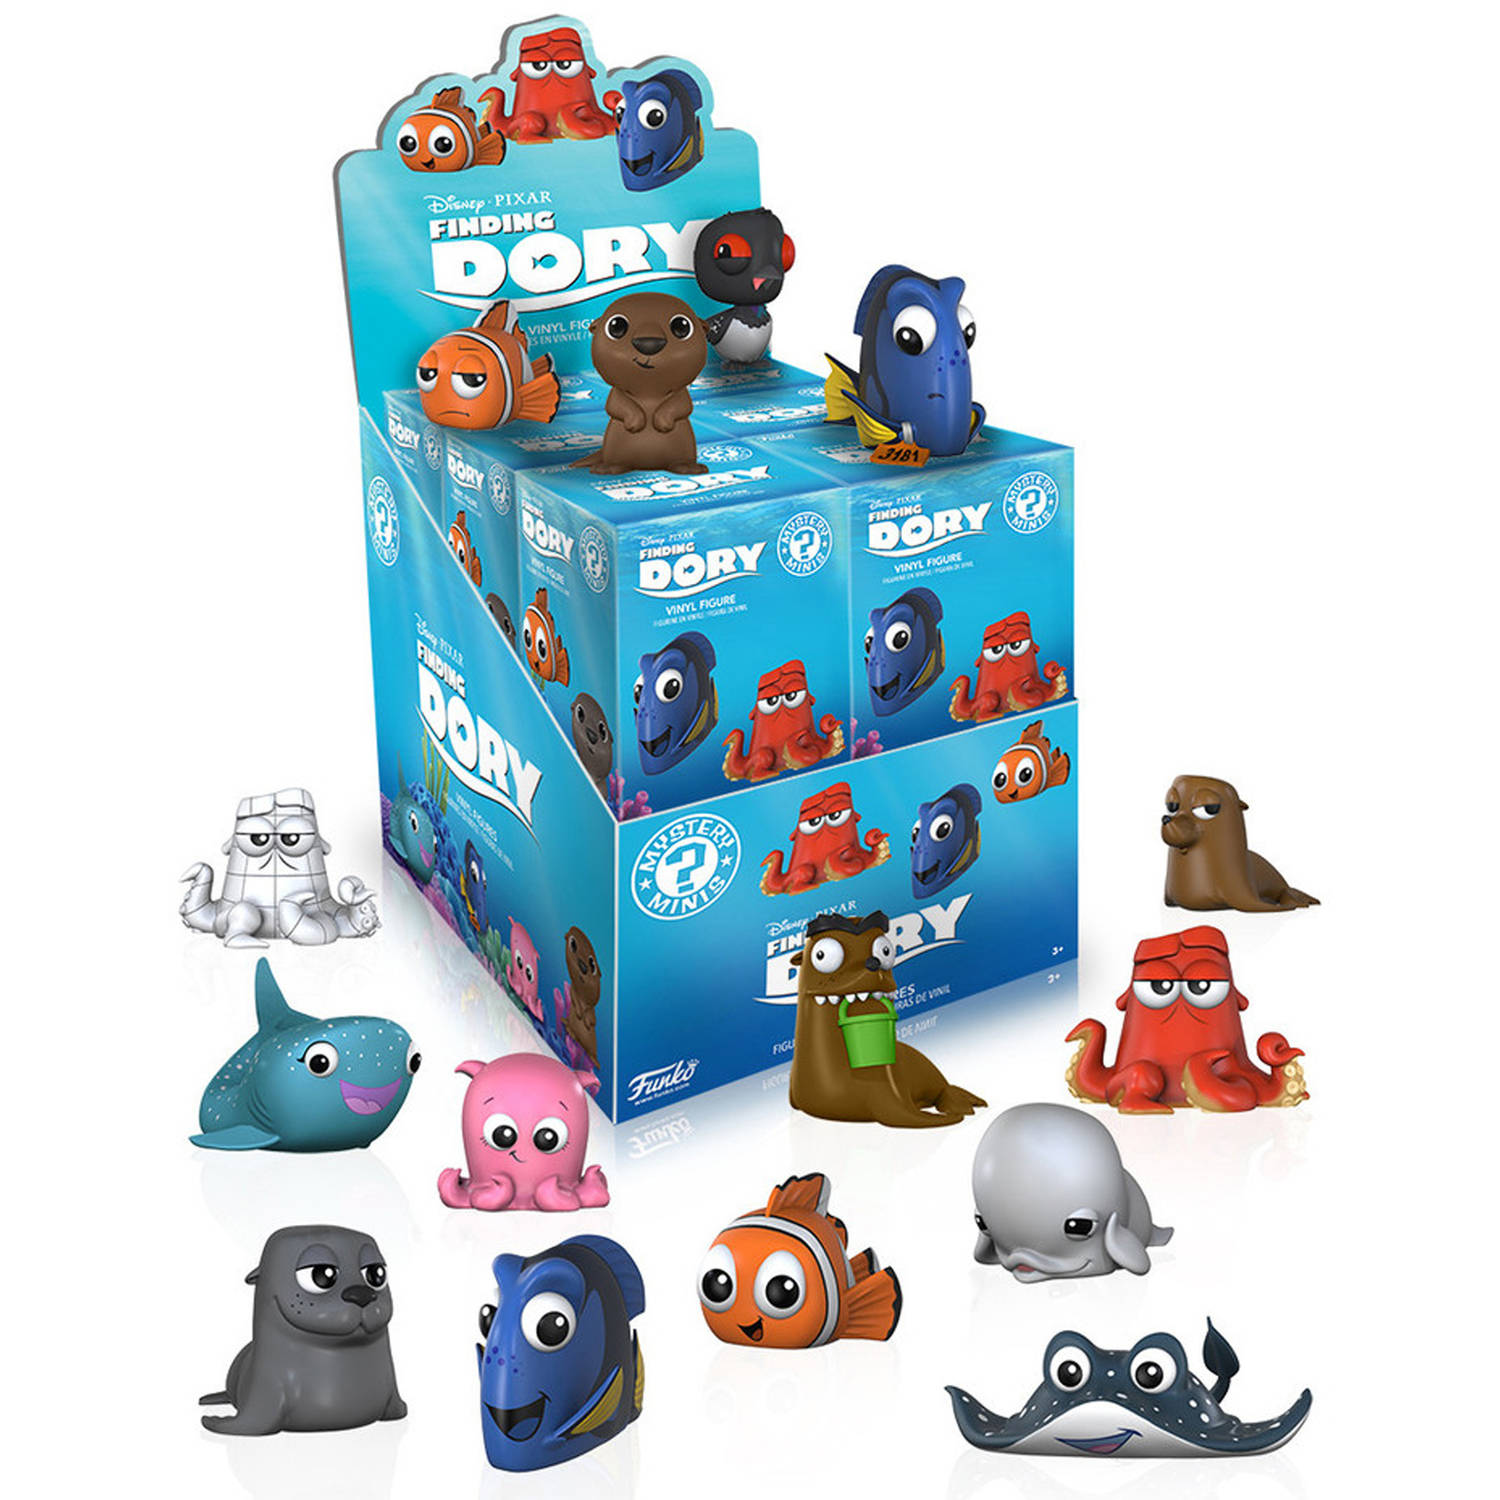 Funko Mystery Mini Blind Box, Finding Dory, One Mystery Figure